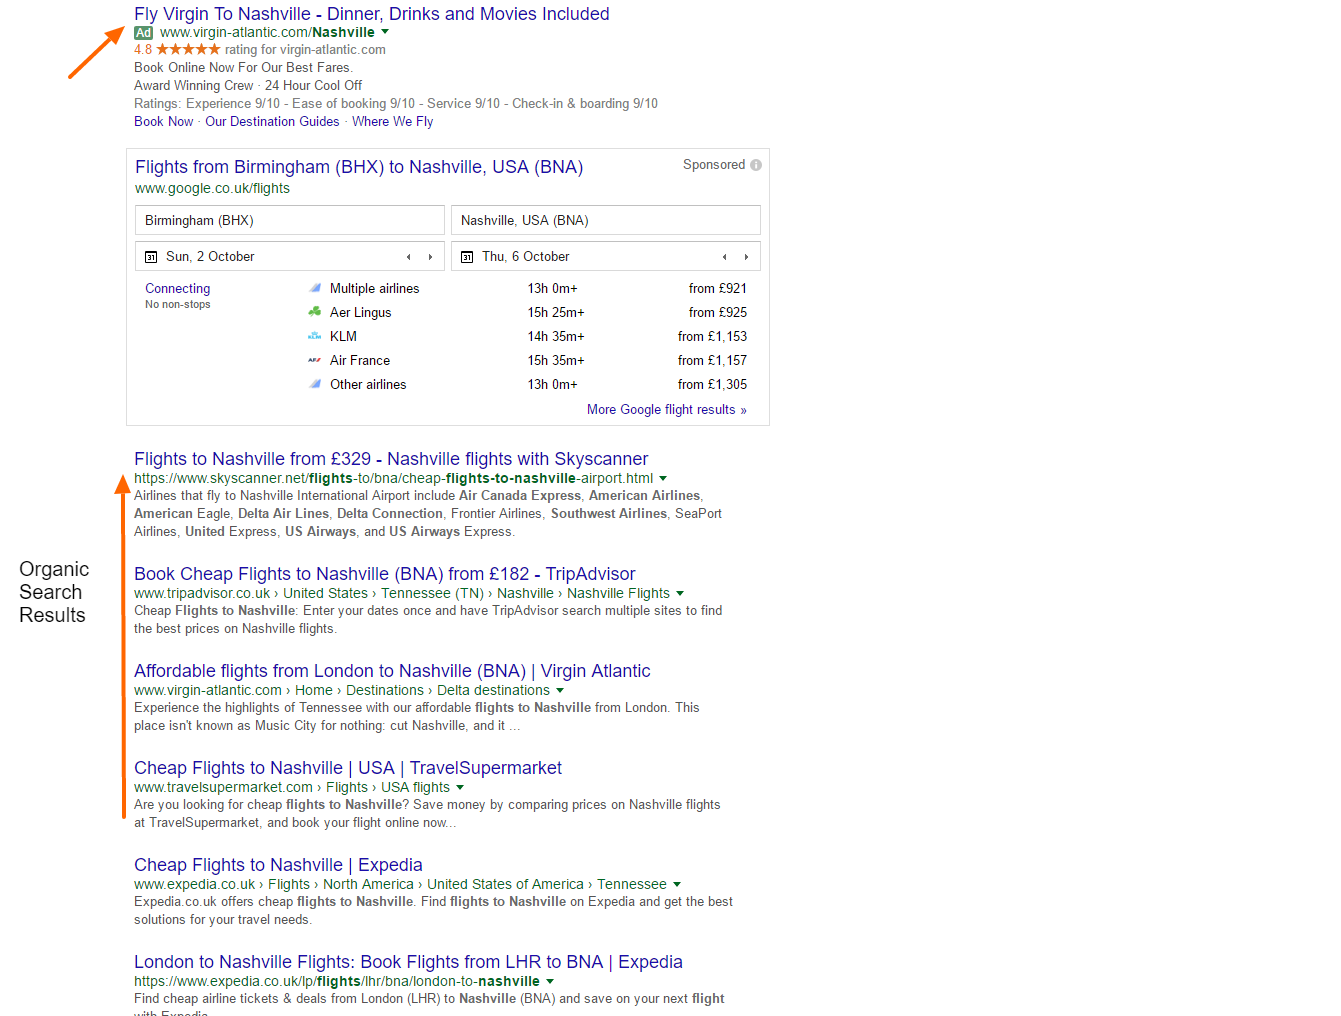 Google Search Results Segmentation Into Ads And Regular Search Results